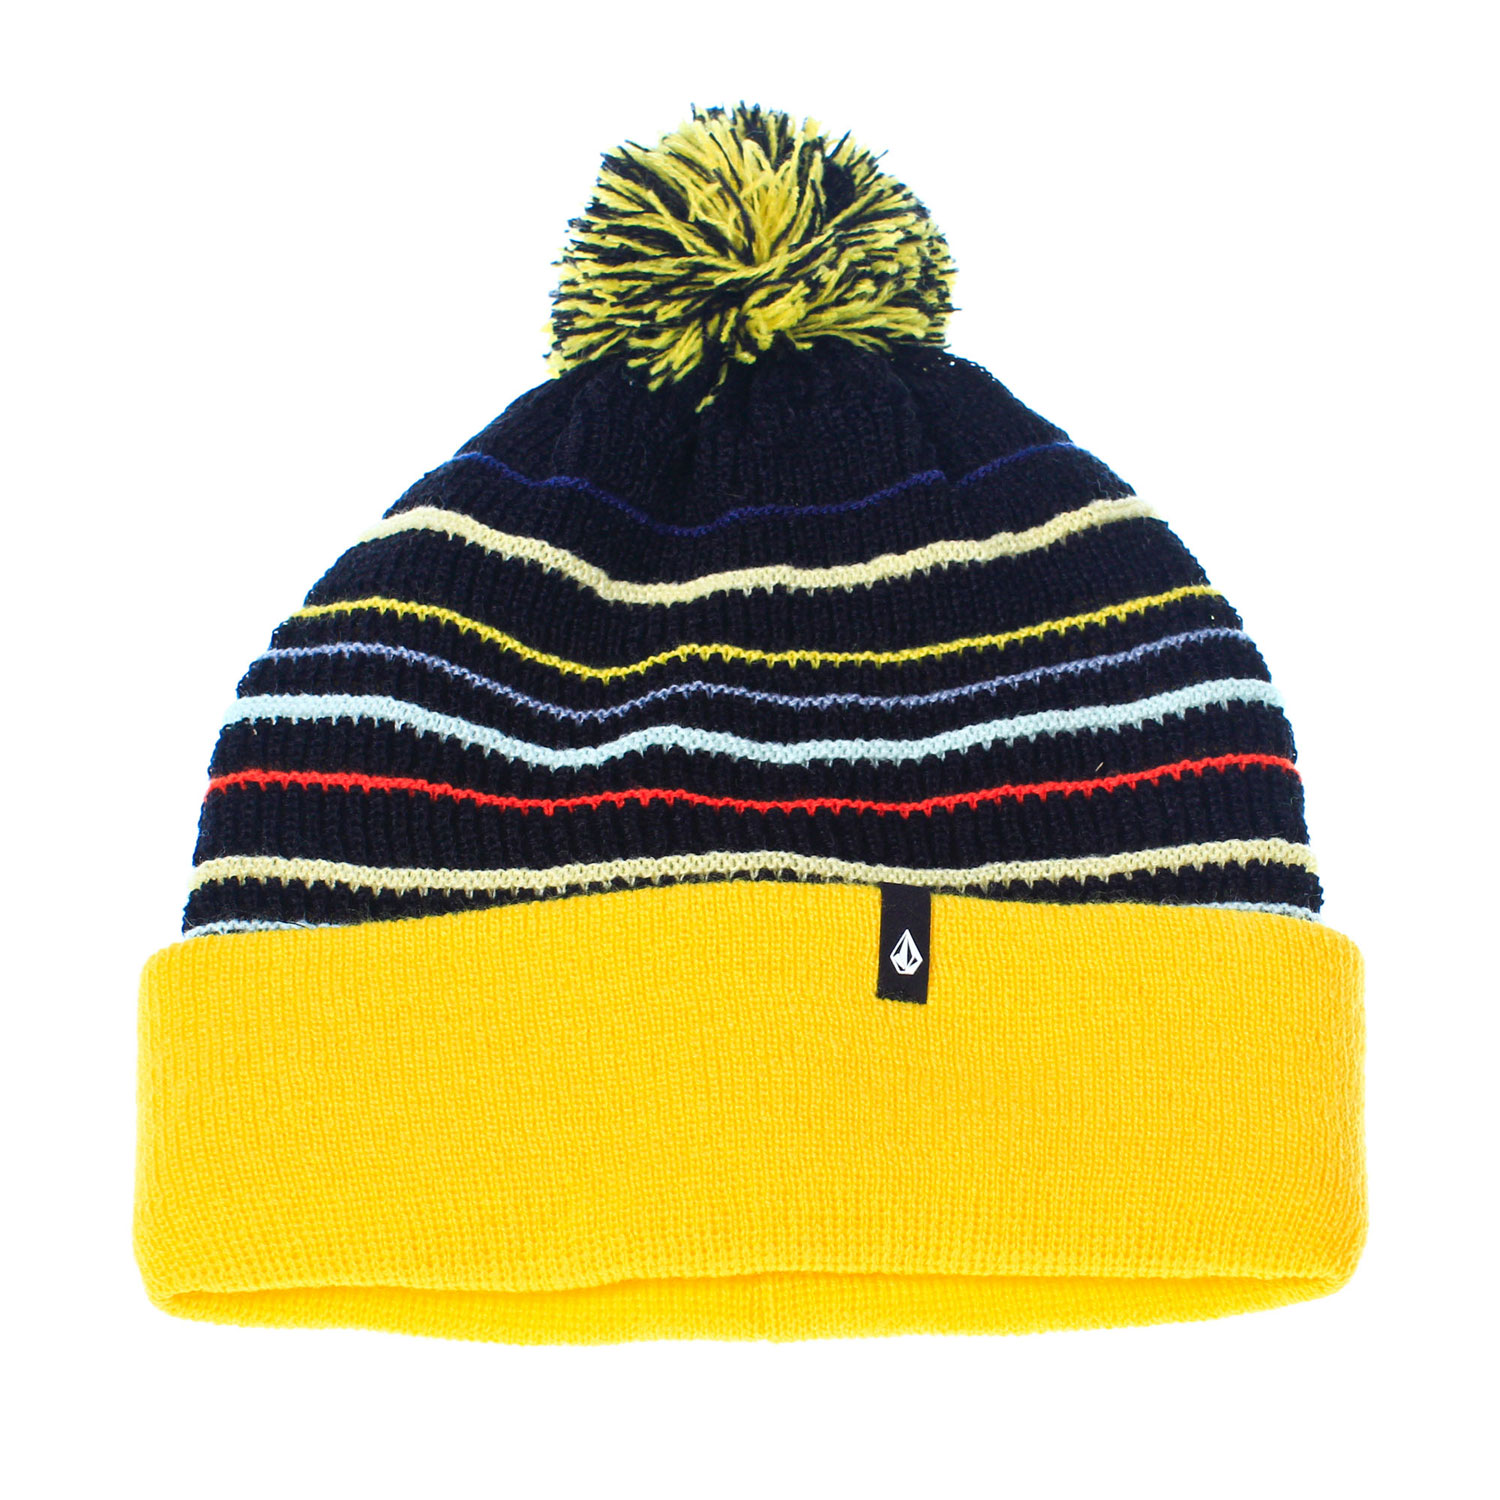 Surf Key Features of the Volcom Adel Beanie: One Size Fits Most Machine Knit Acrylic Rollover Pom Pom Woven Clamp Label Roll Over Fit - $20.95